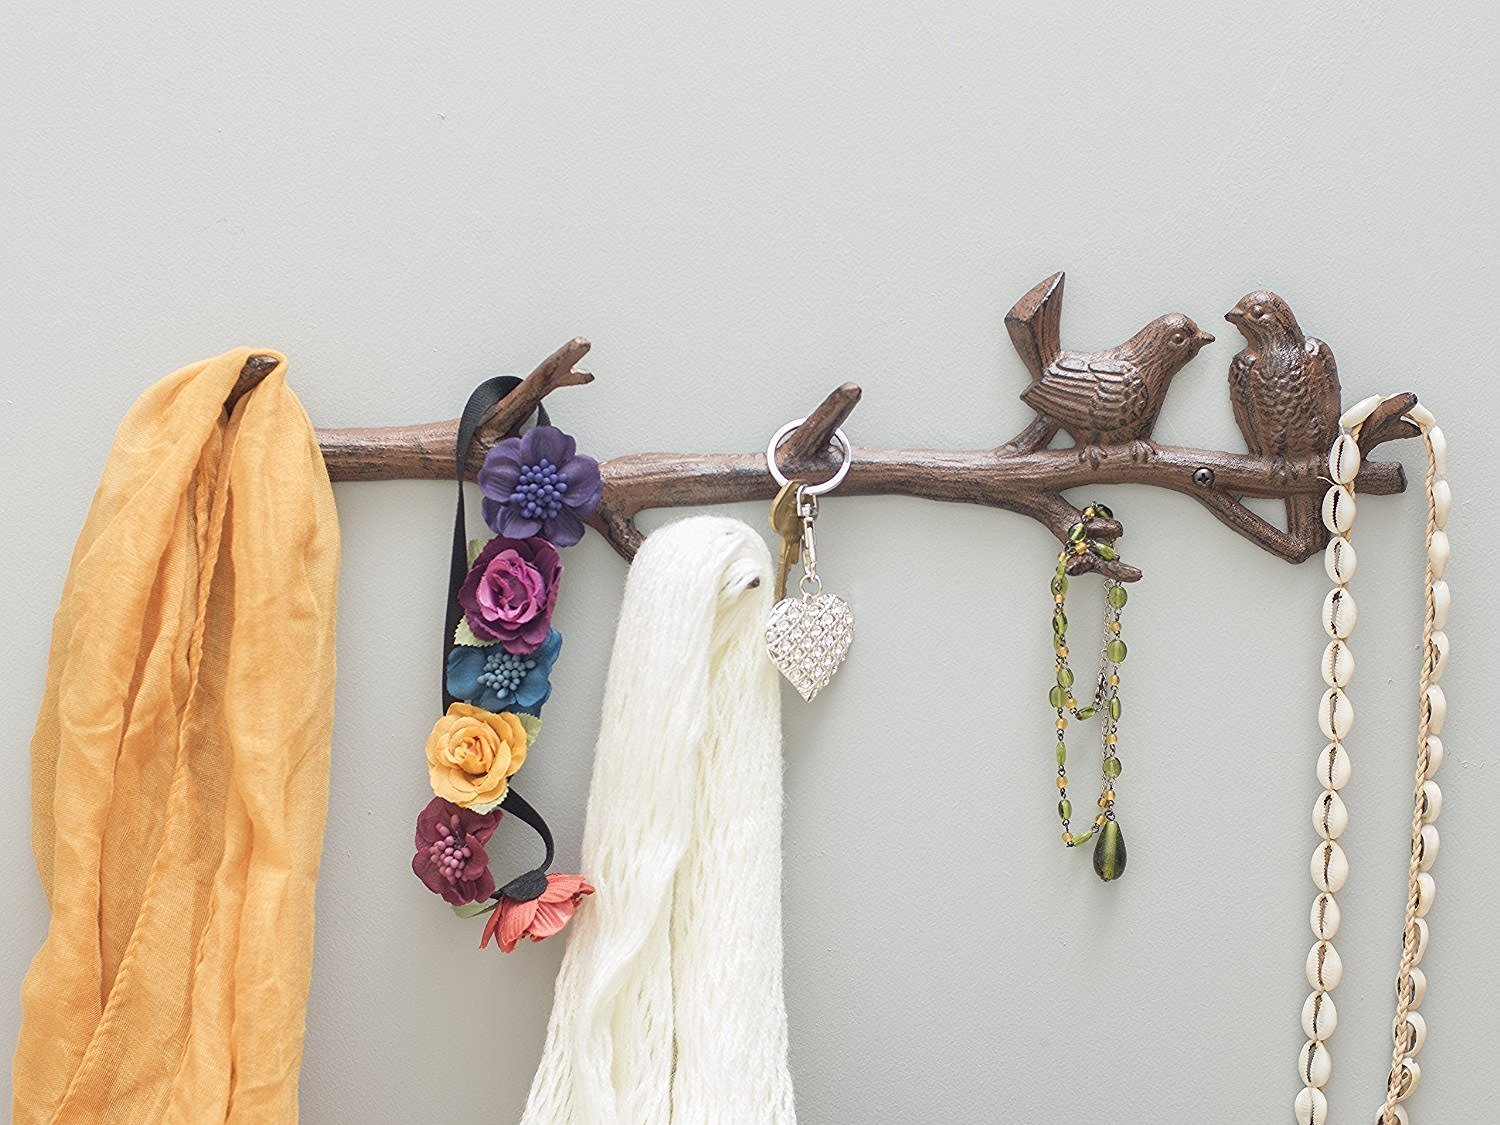 Amazon.com: Cast Iron Birds On Branch Hanger With 6 Hooks | Decorative Cast  Iron Wall Hook Rack | For Coats, Hats, Keys, Towels, Clothes | 18.5x2x4.5 -  With ...